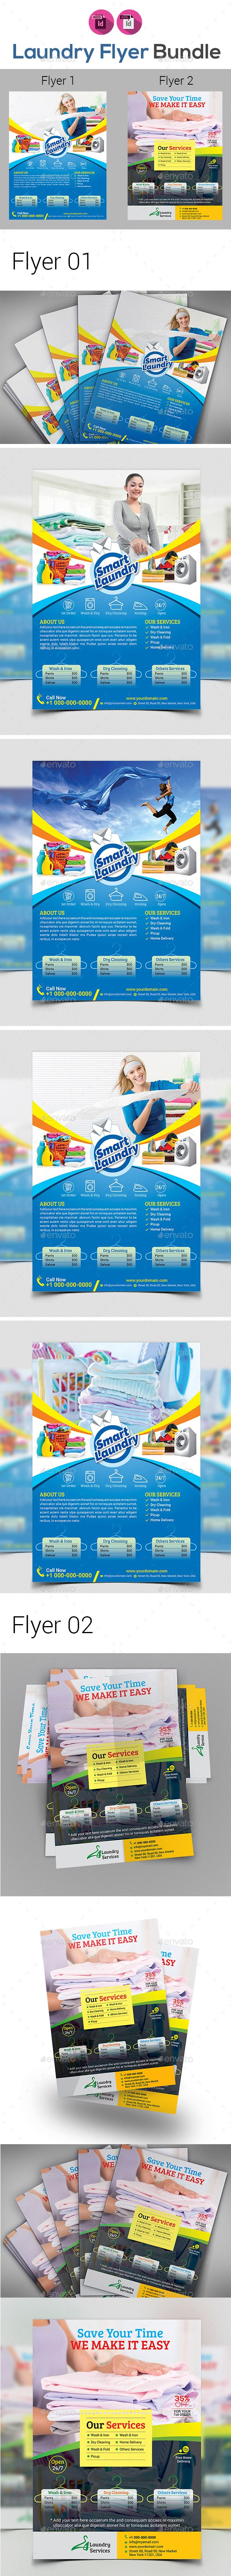 Laundry & Dry Cleaning Services Flyer | Dry cleaning services, Dry ...